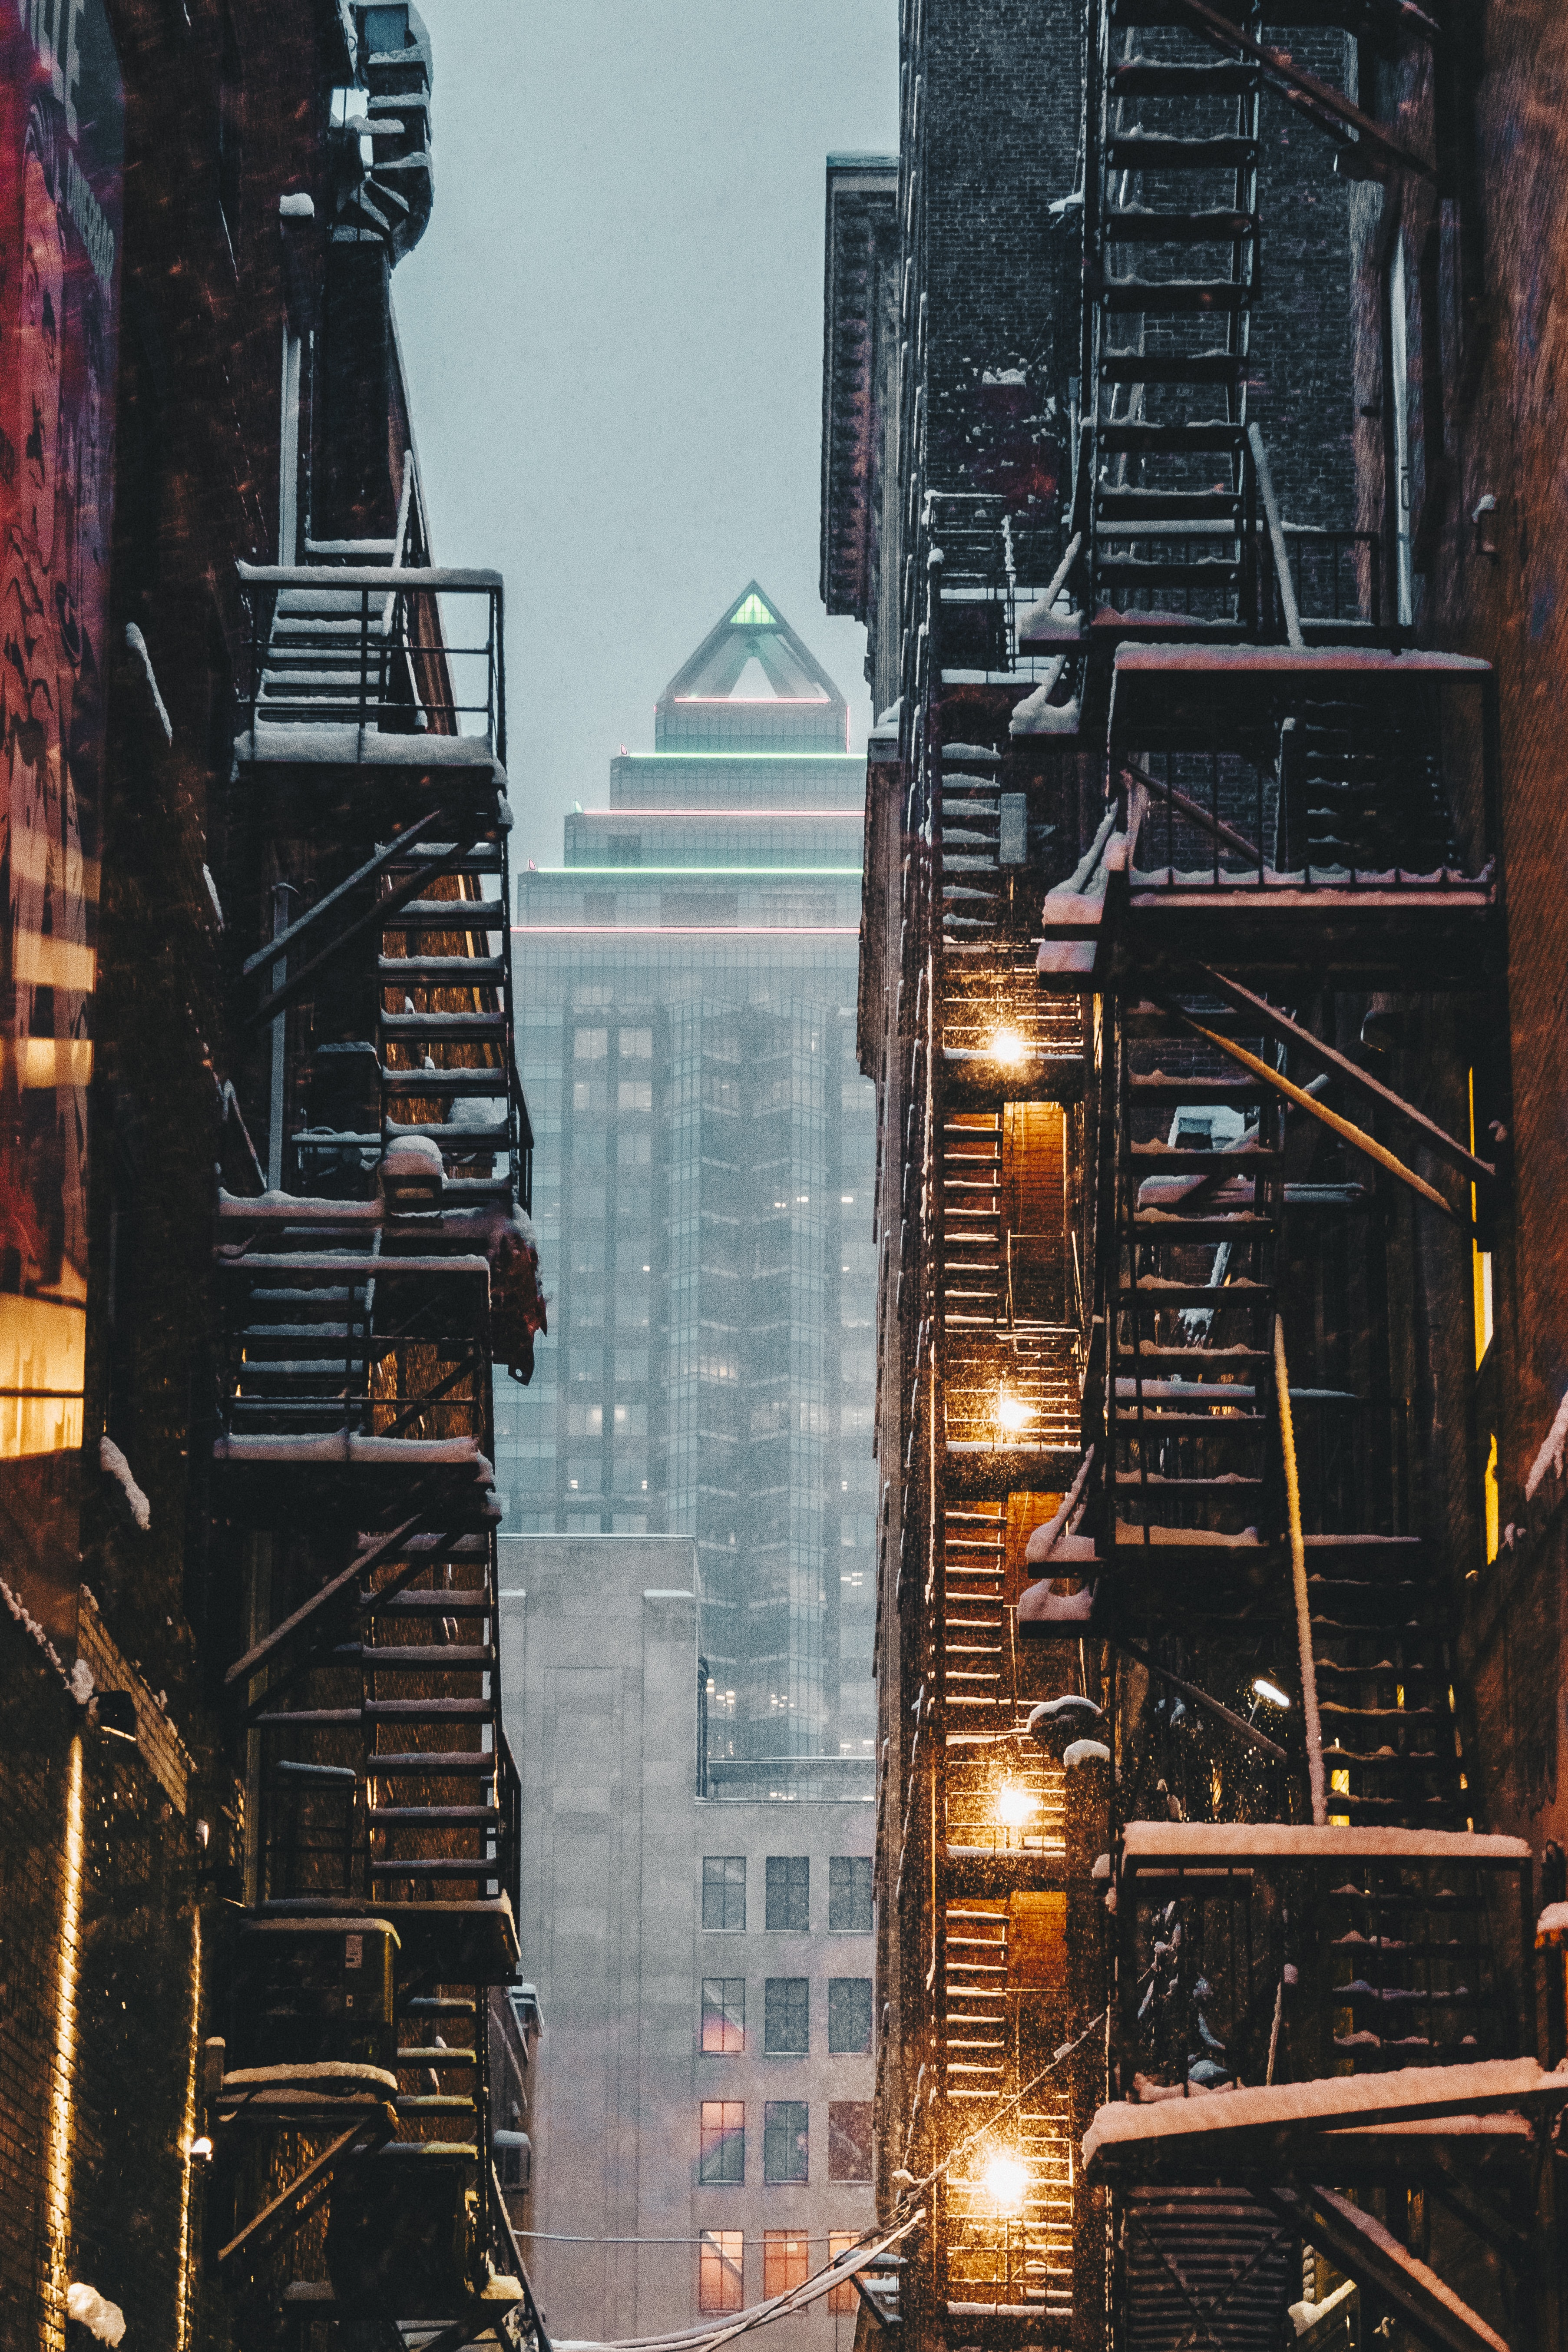 View through an alley of apartment stairwells of a skyscraper downtown in the winter